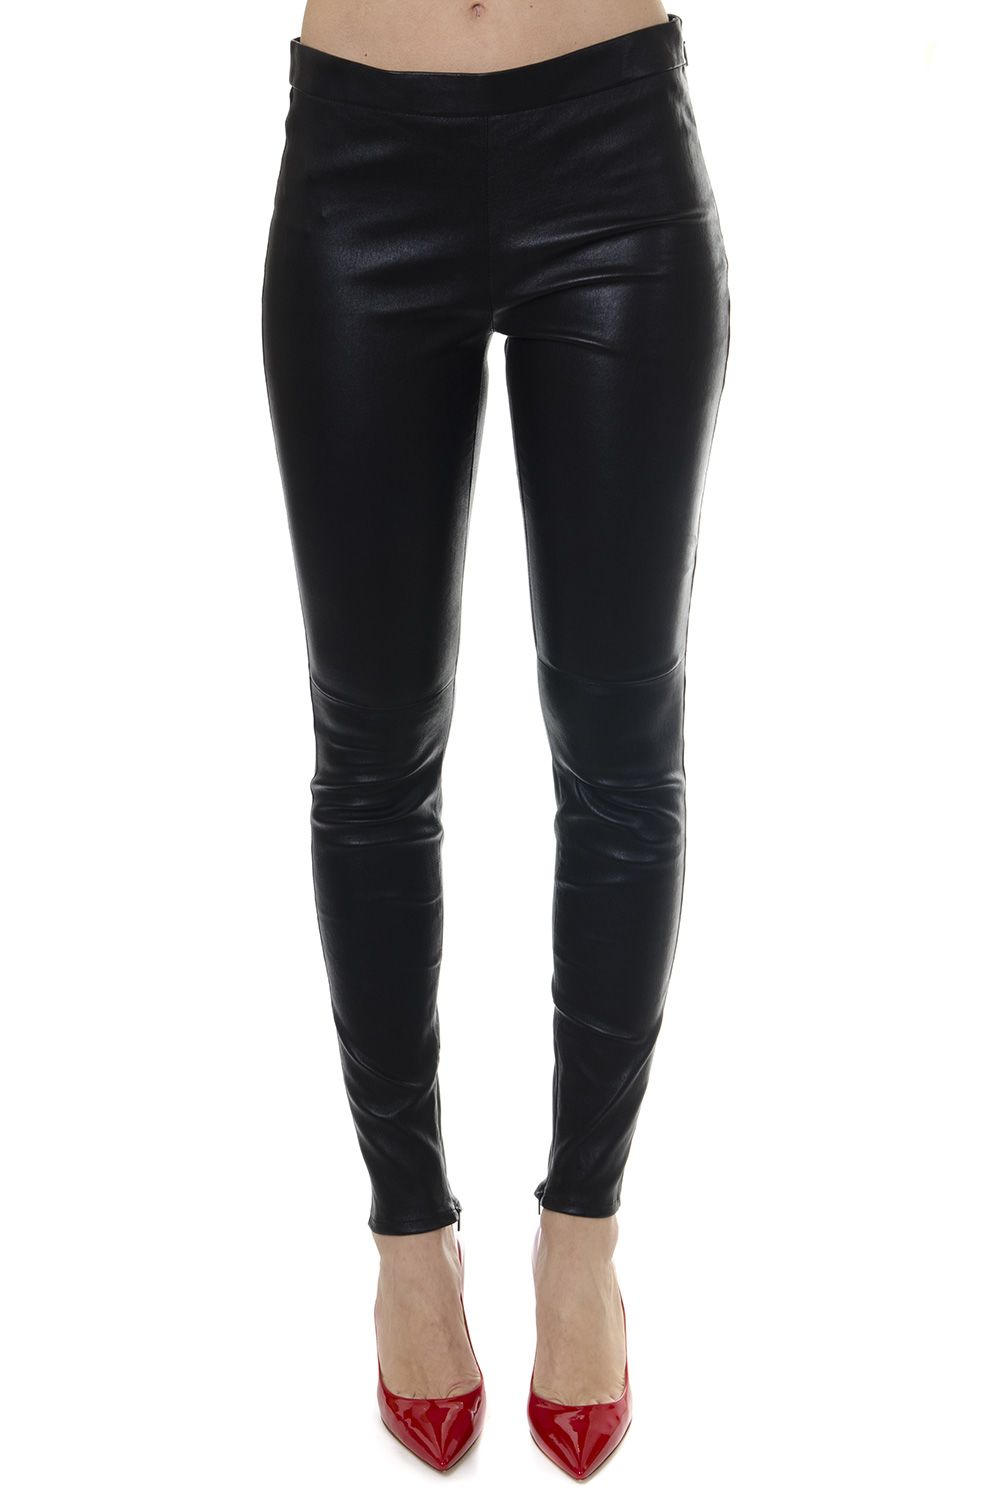 Saint Laurent Black Lambskin Leather Leggins